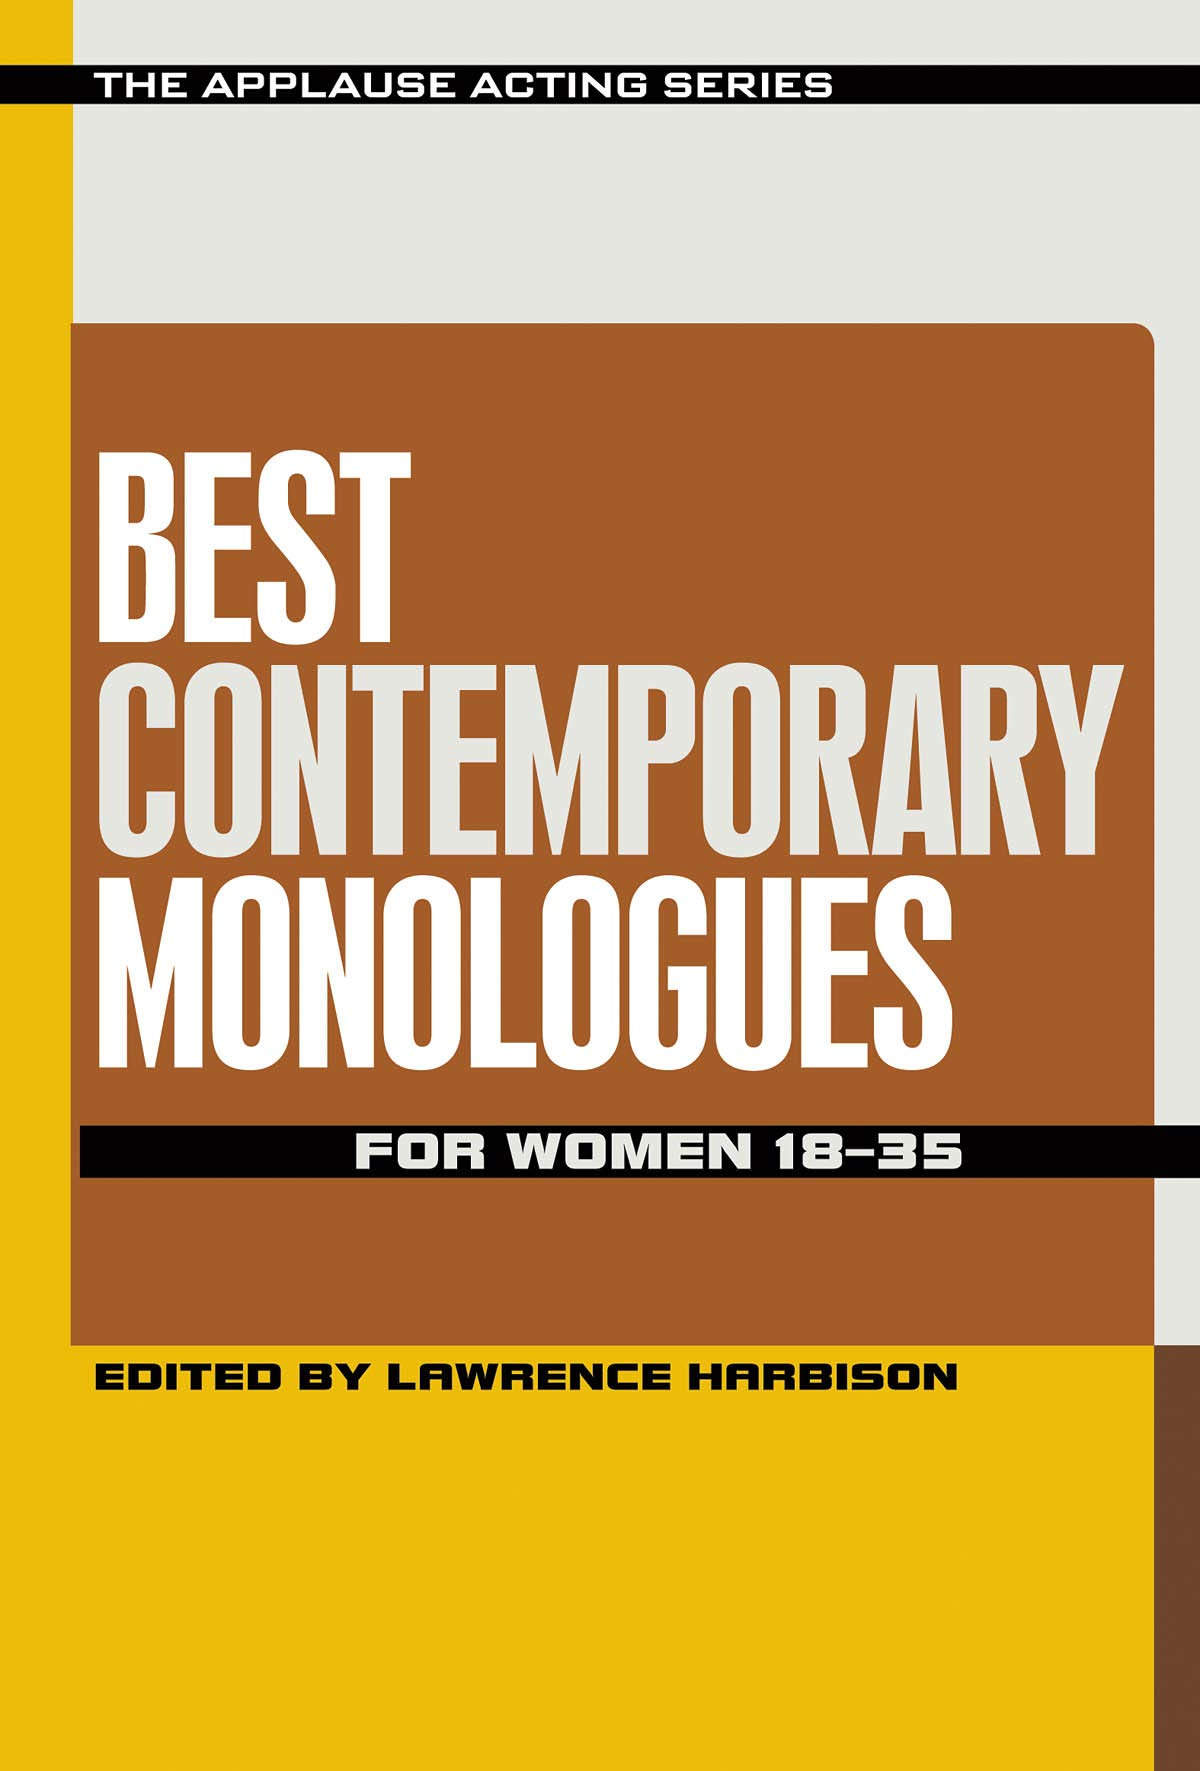 Best Contemporary Monologues for Women 18-35: Lawrence